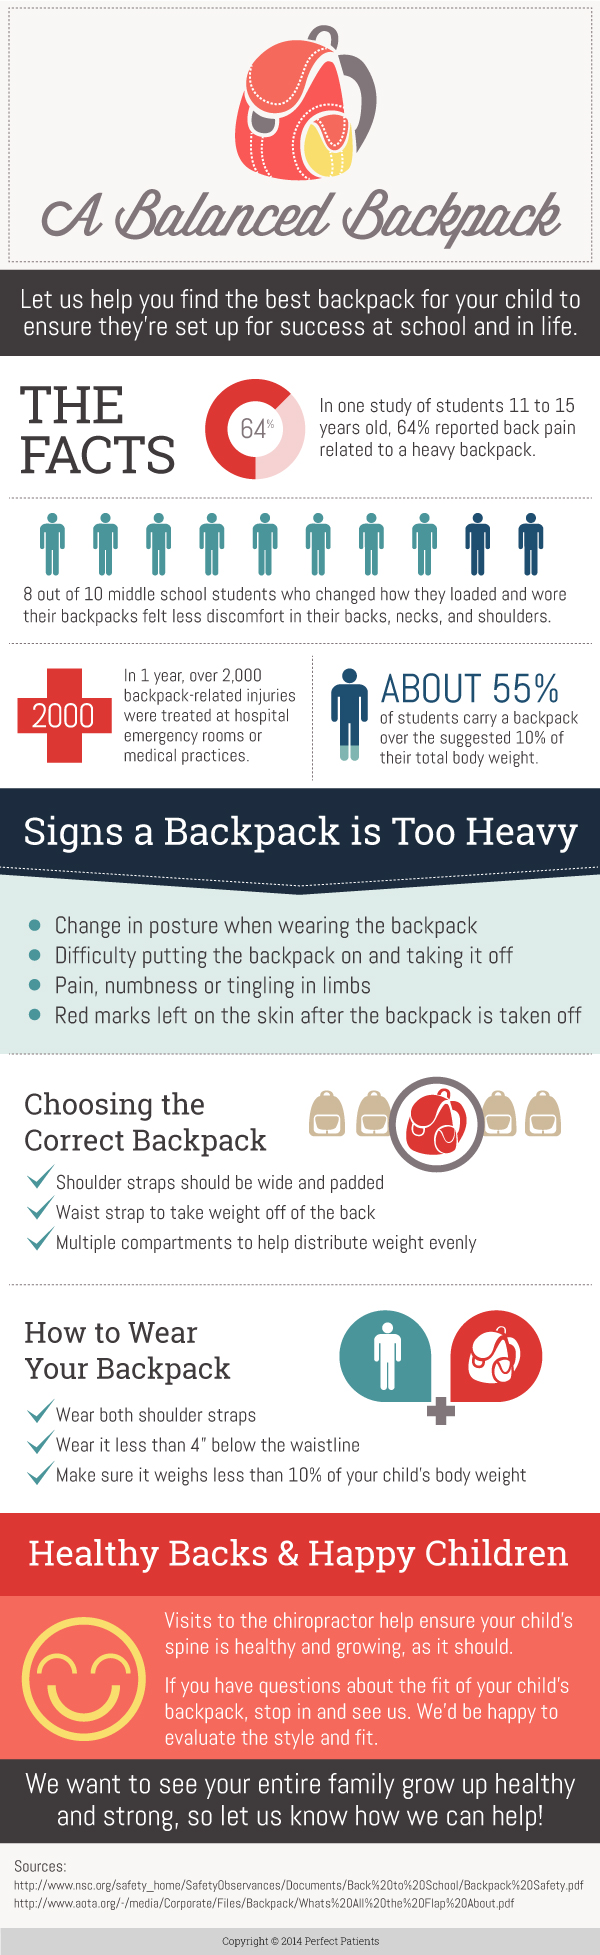 a-balanced-backpack-infographic